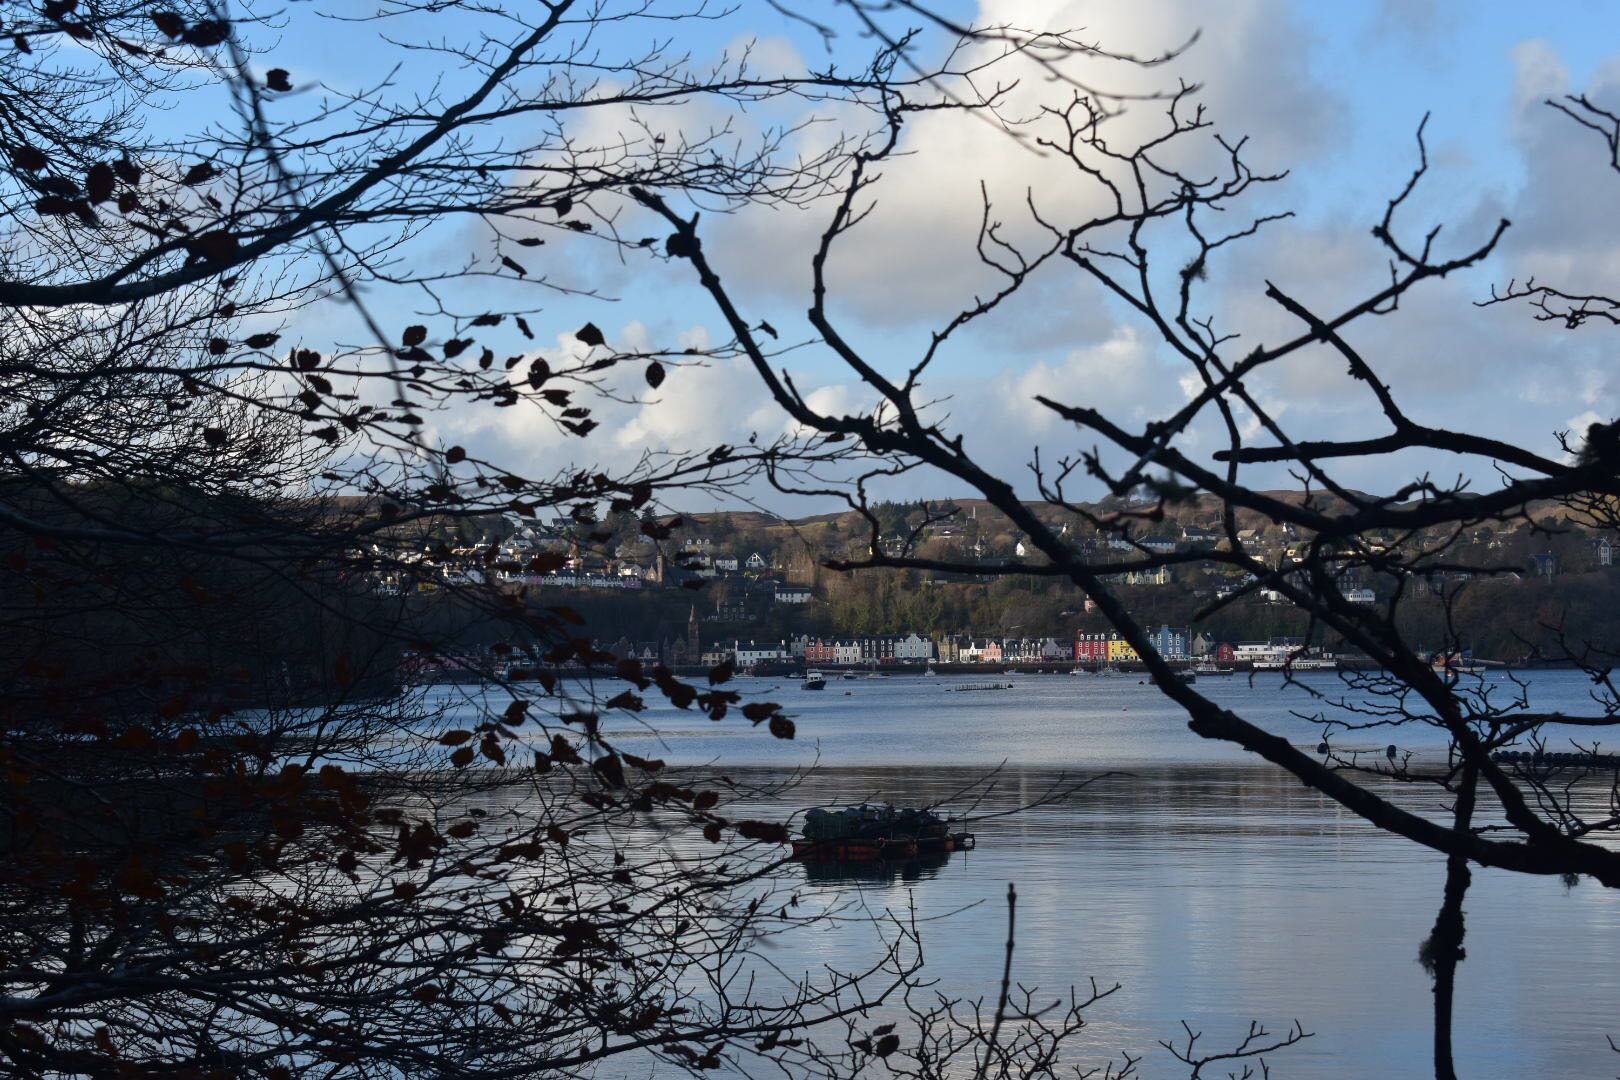 Wishing you all a very Merry Christmas and a happy new year from Tobermory